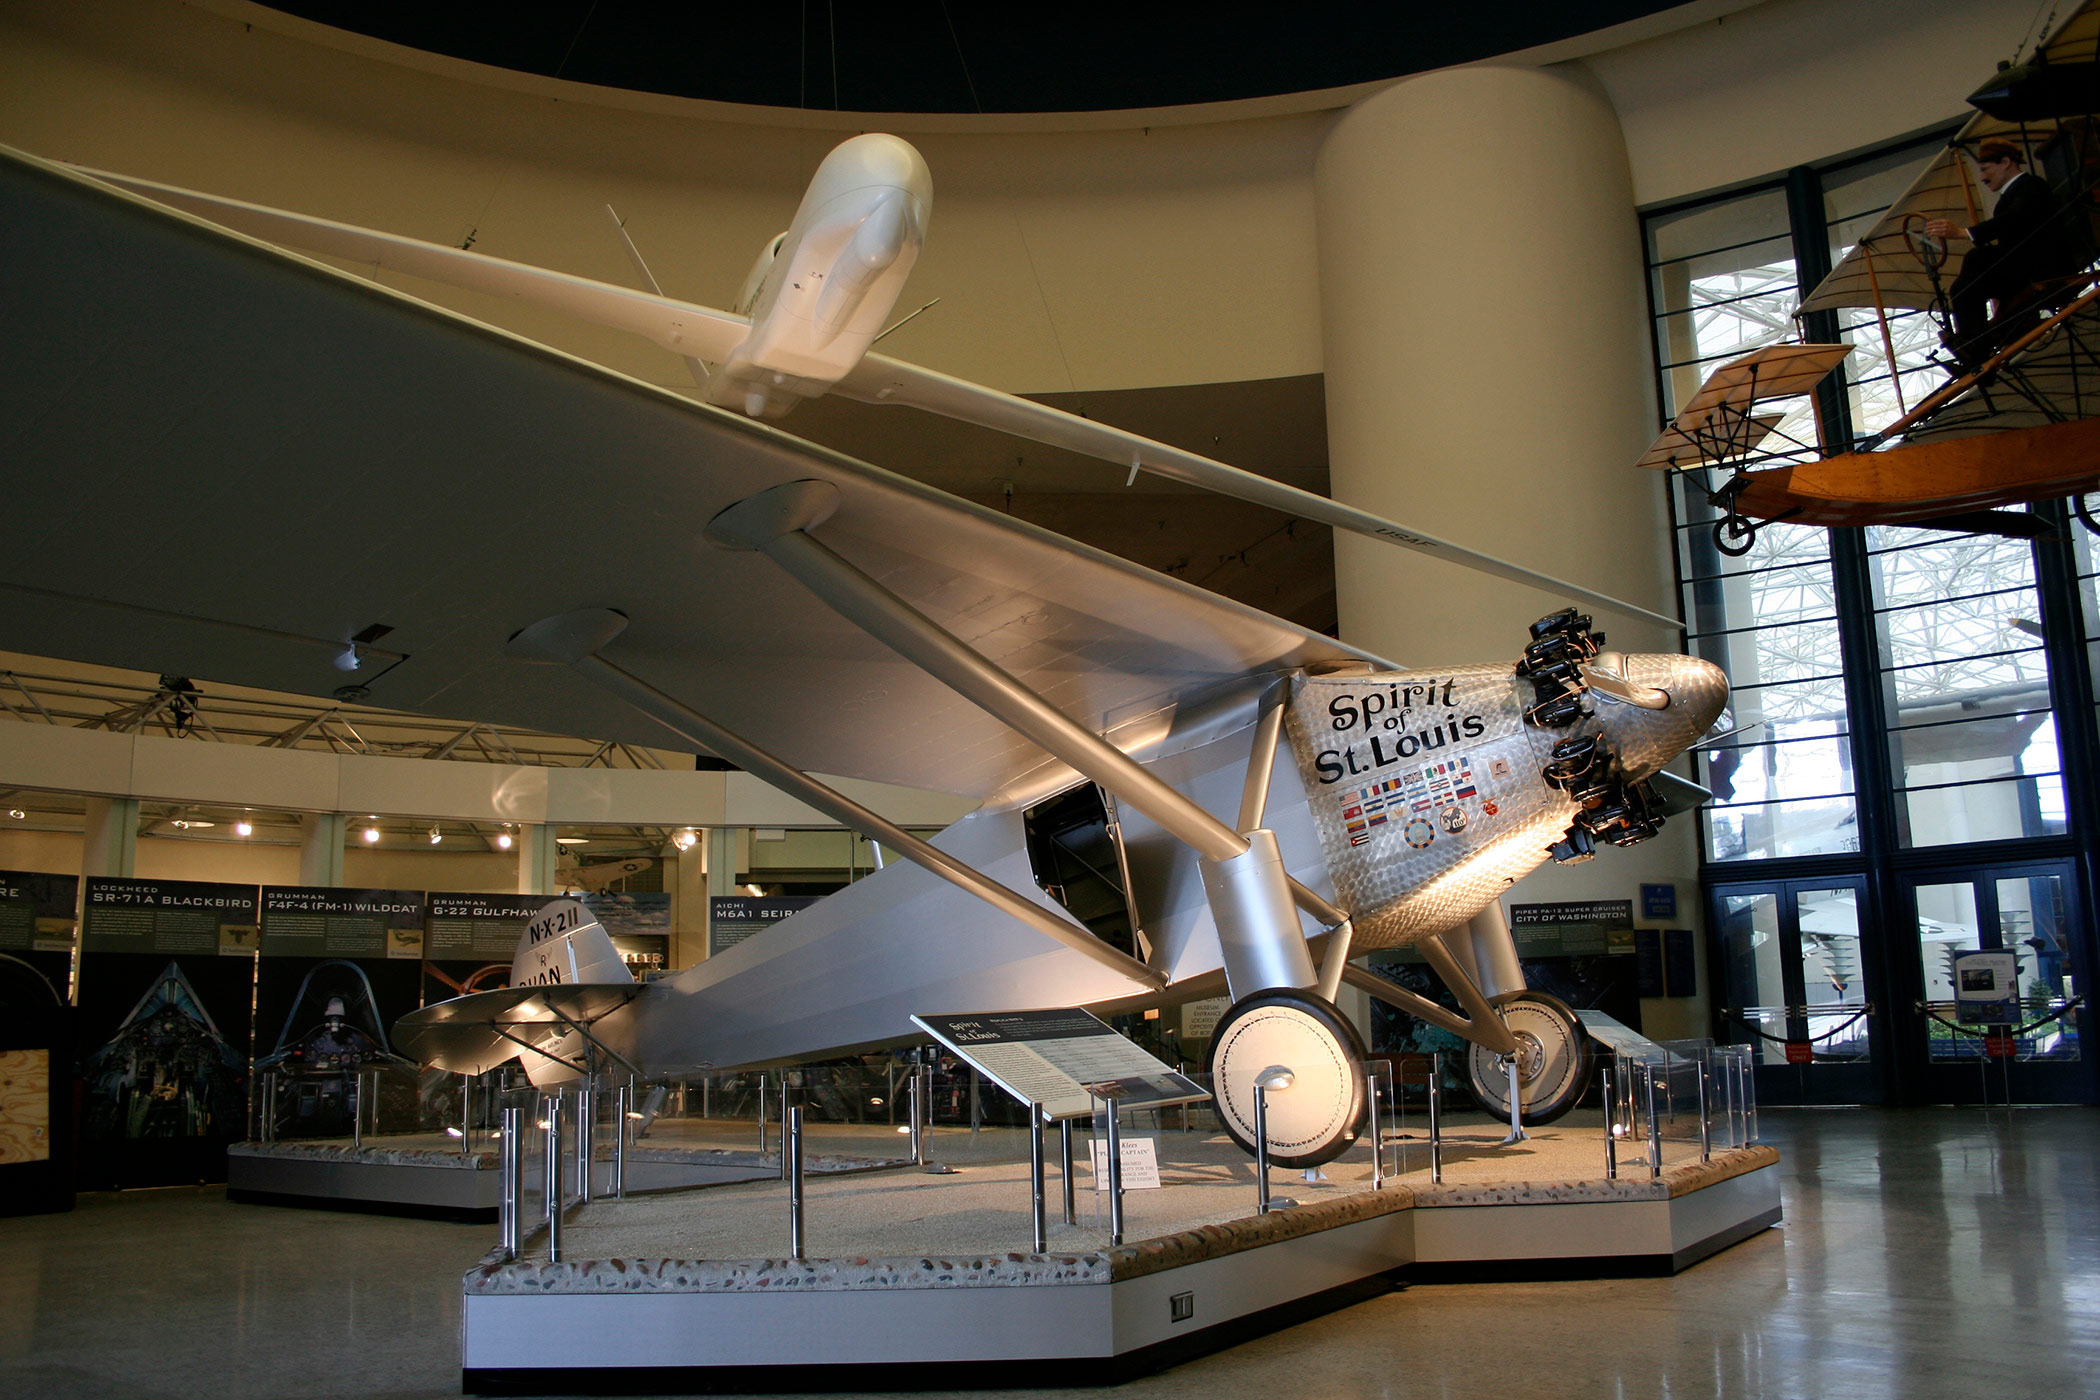 Spirit of Saint Louis at San Diego Air and Space Museum